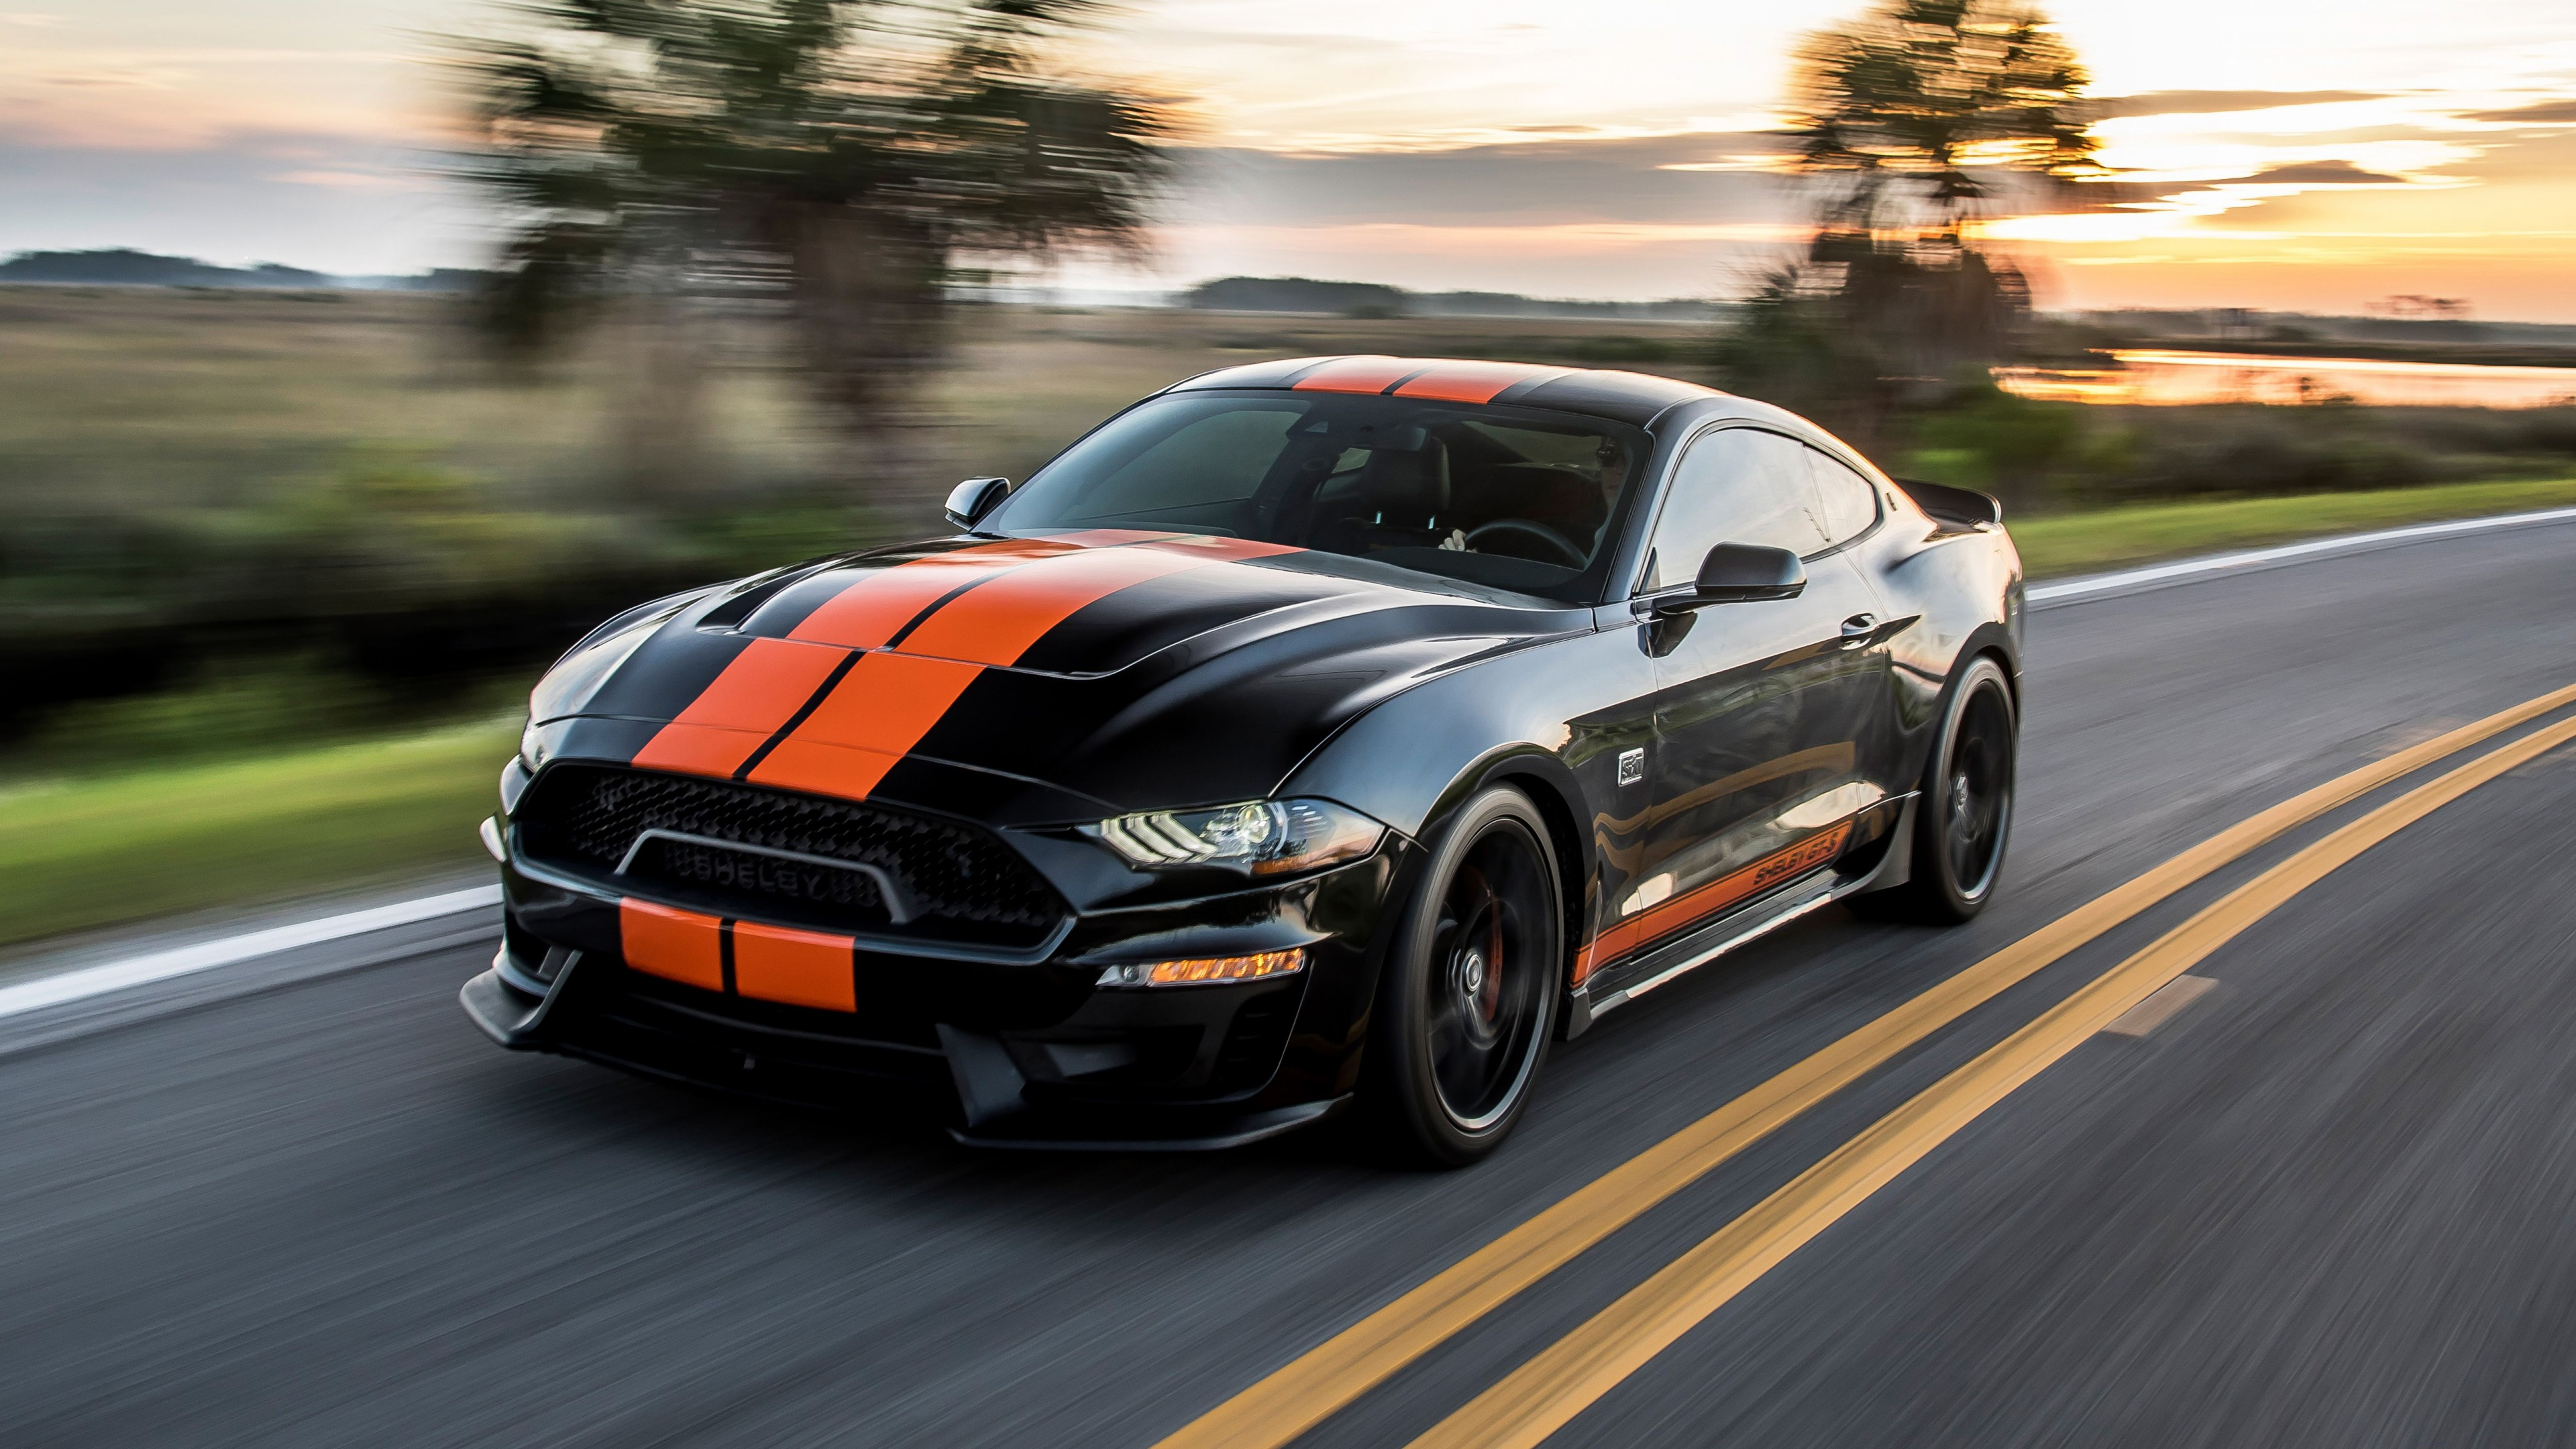 2019 Shelby Ford Mustang GT-S 4K Wallpaper   HD Car ...